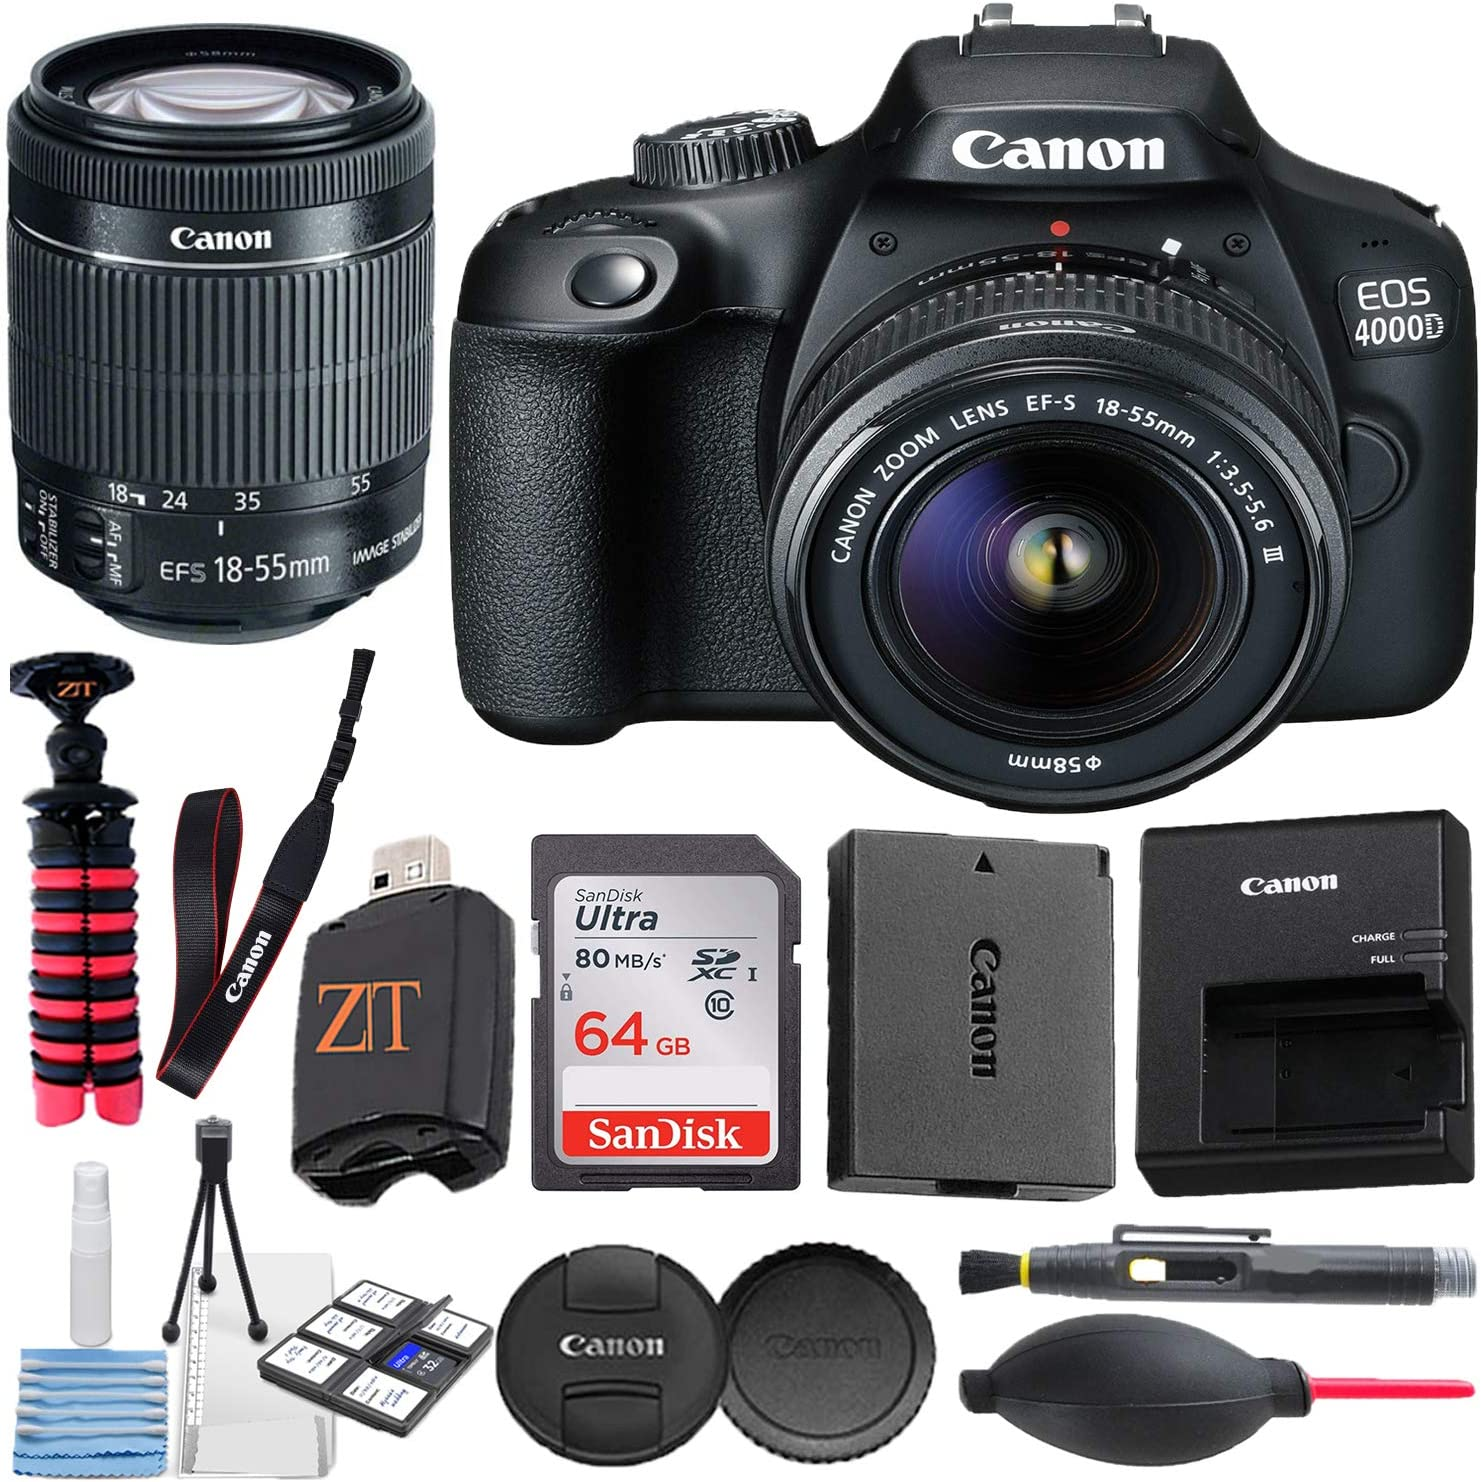 Canon EOS 4000D / Rebel T100 DSLR Camera w/ 18-55MM DC III Zoom Lens with Accessory Bundle + SanDisk 64GB Memory Card + Hi-Speed USB Card Reader + Spider Tripod (17 pcs Bundle)